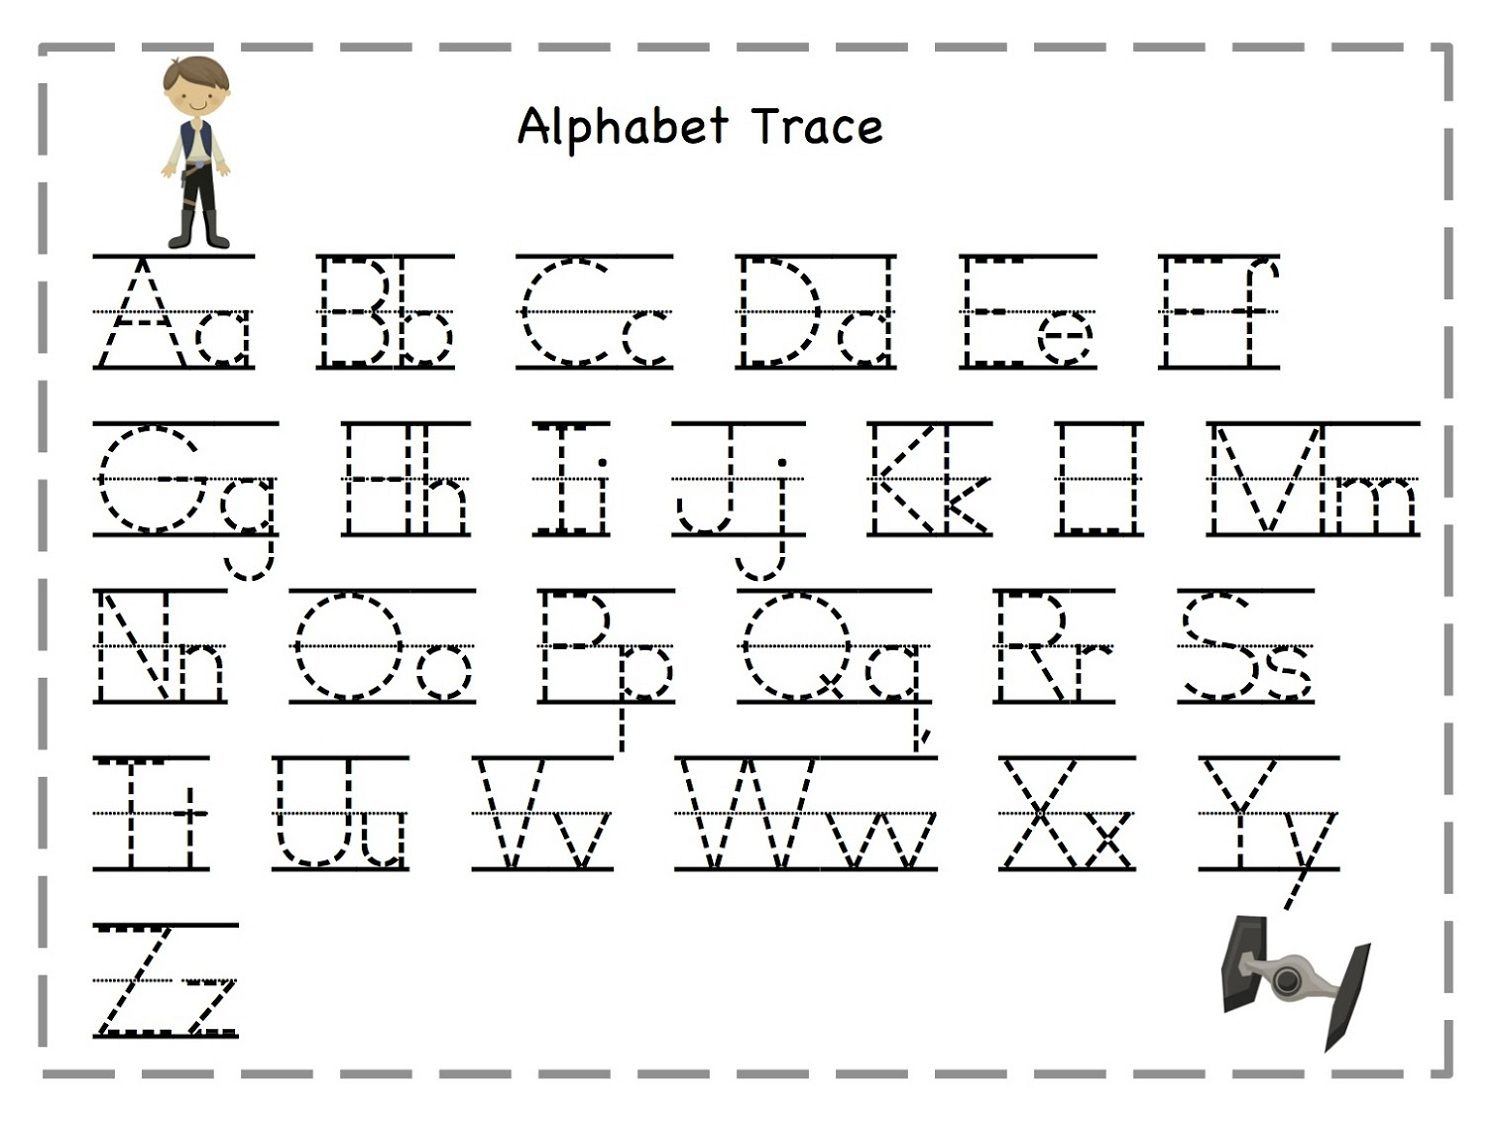 Worksheet Trace The Alphabet Printable tracing letters for kids activities pinterest today our site present a new post about your little child can do practice at home with wor